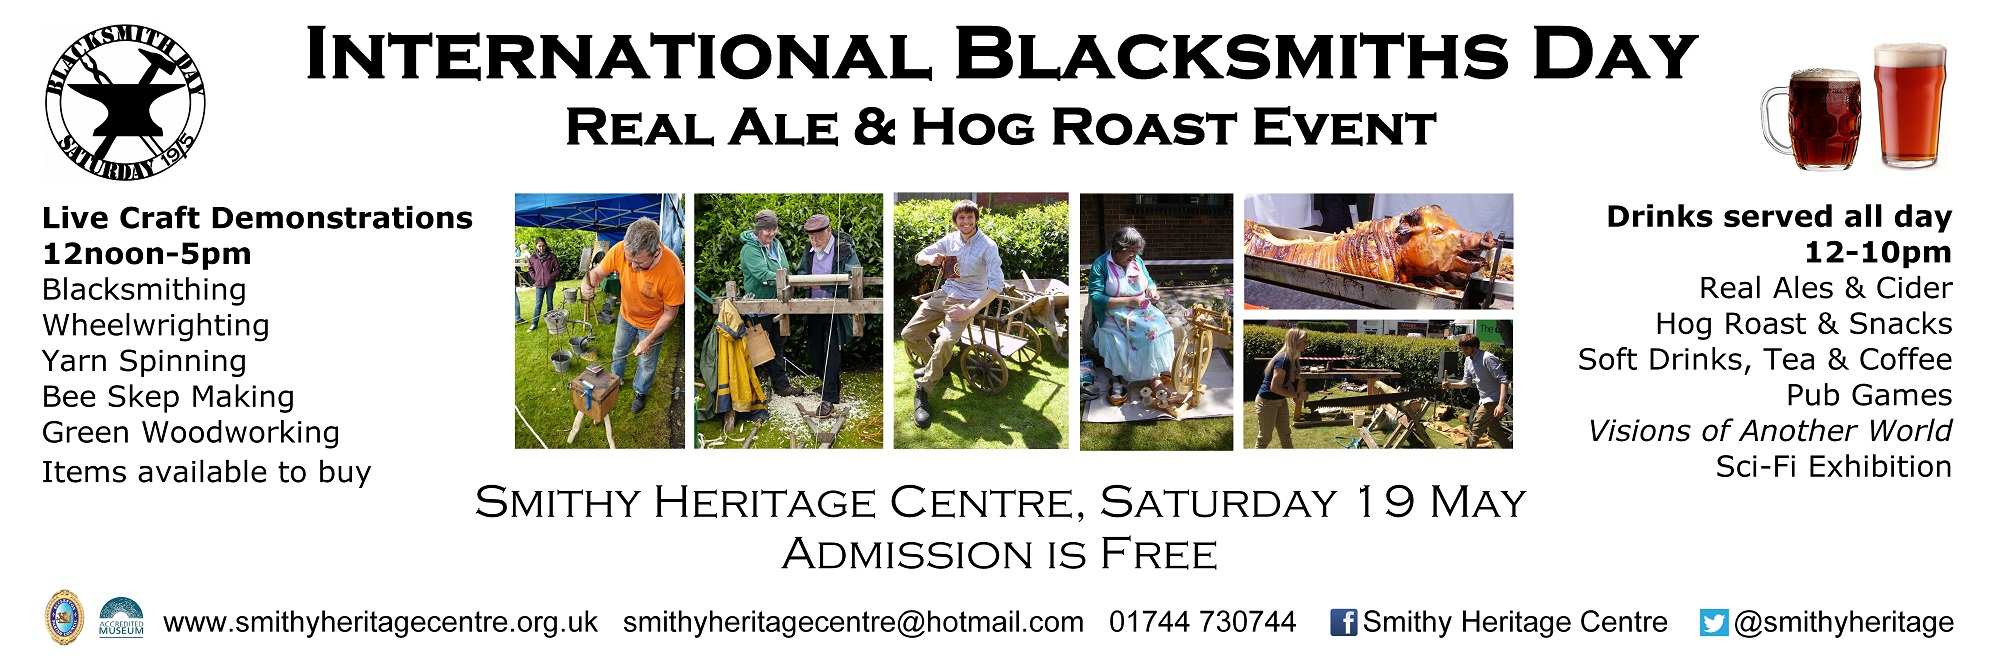 International Blacksmiths Day